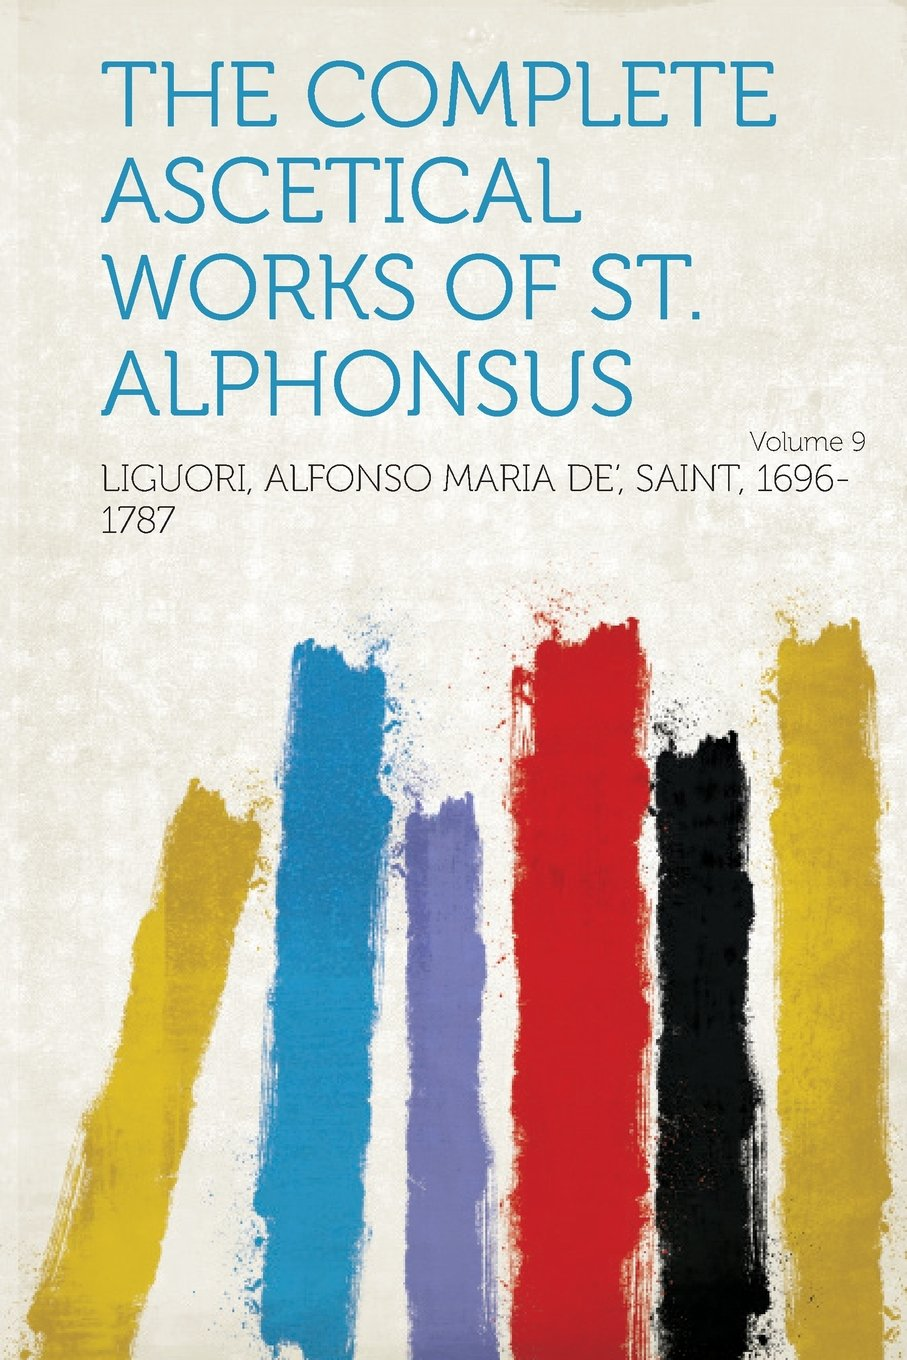 Read Online The Complete Ascetical Works of St. Alphonsus Volume 9 pdf epub